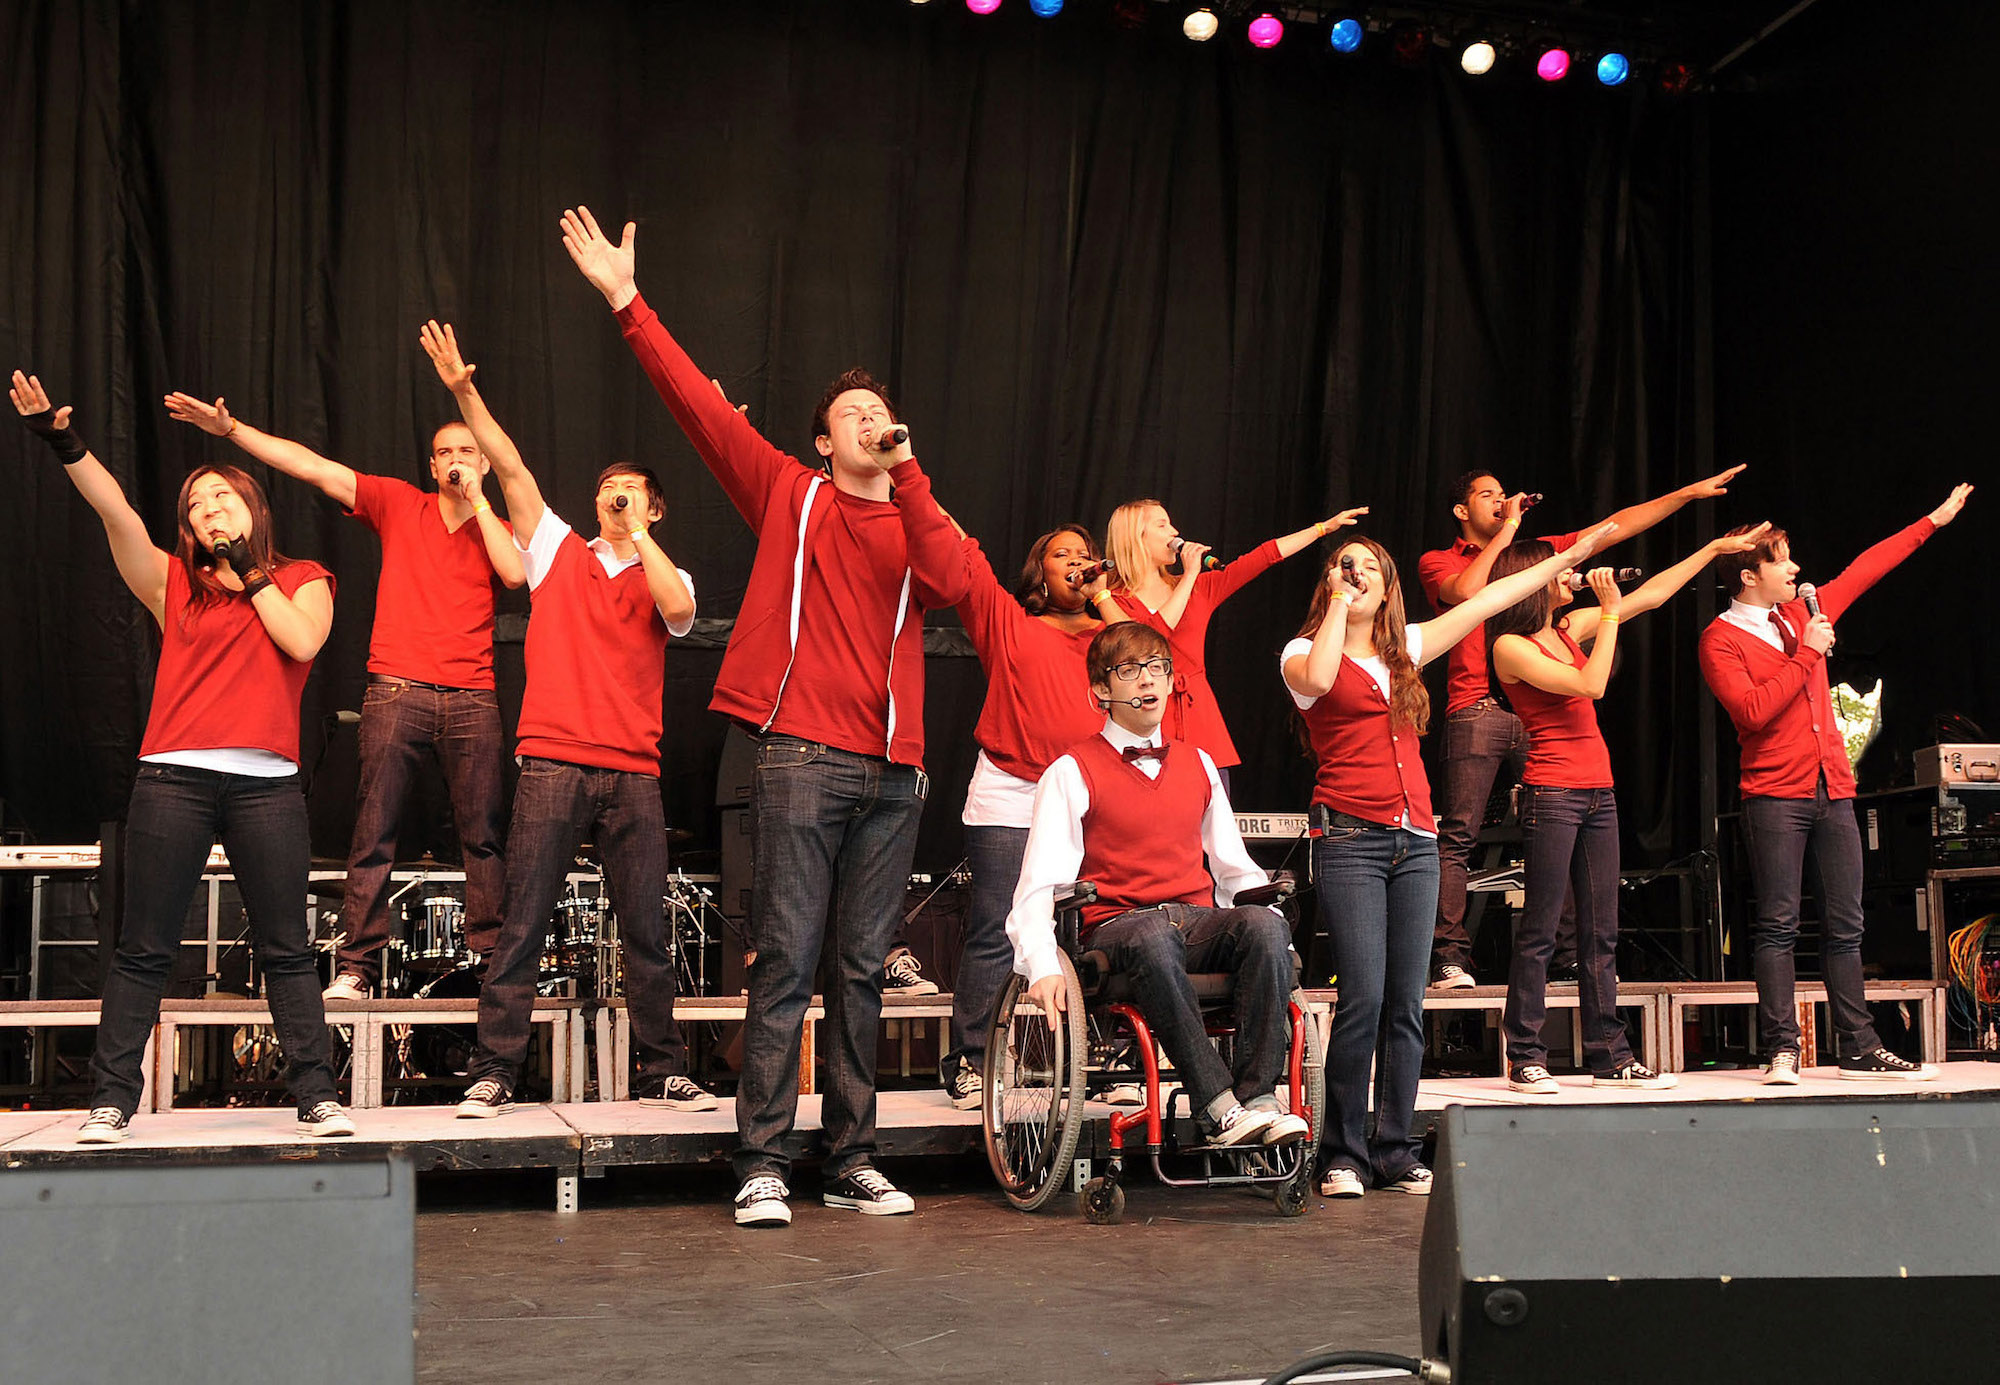 The cast of GLEE performs at the White House for the White House Easter Egg Roll on Monday, April 5, 2010